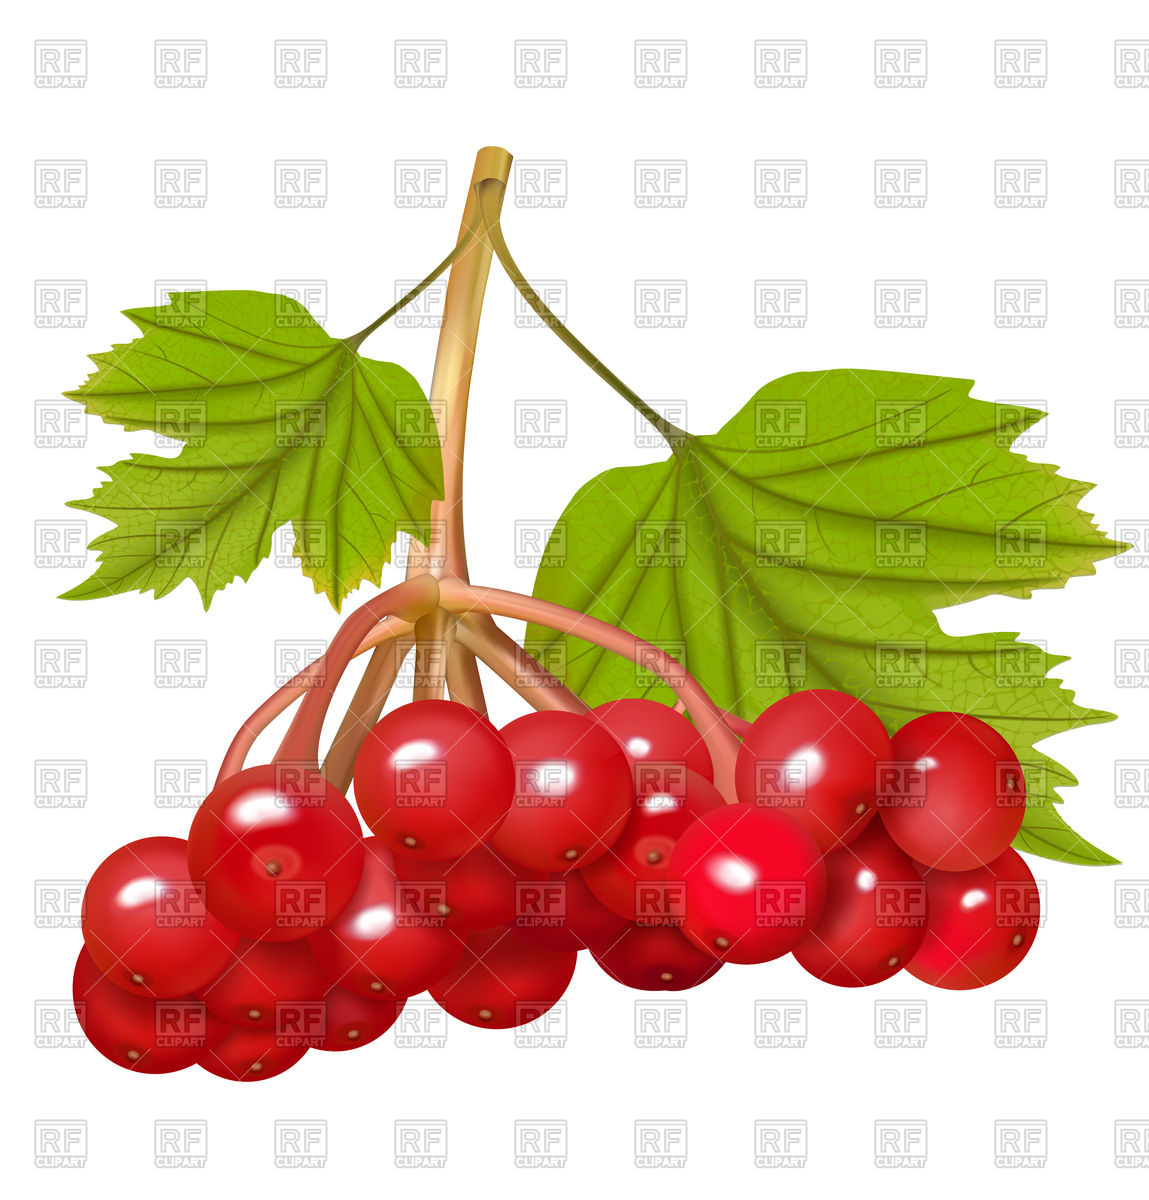 Red viburnum berries Vector Image u2013 Vector Illustration of Plants and  Animals © Olliven #93852 Click to Zoom